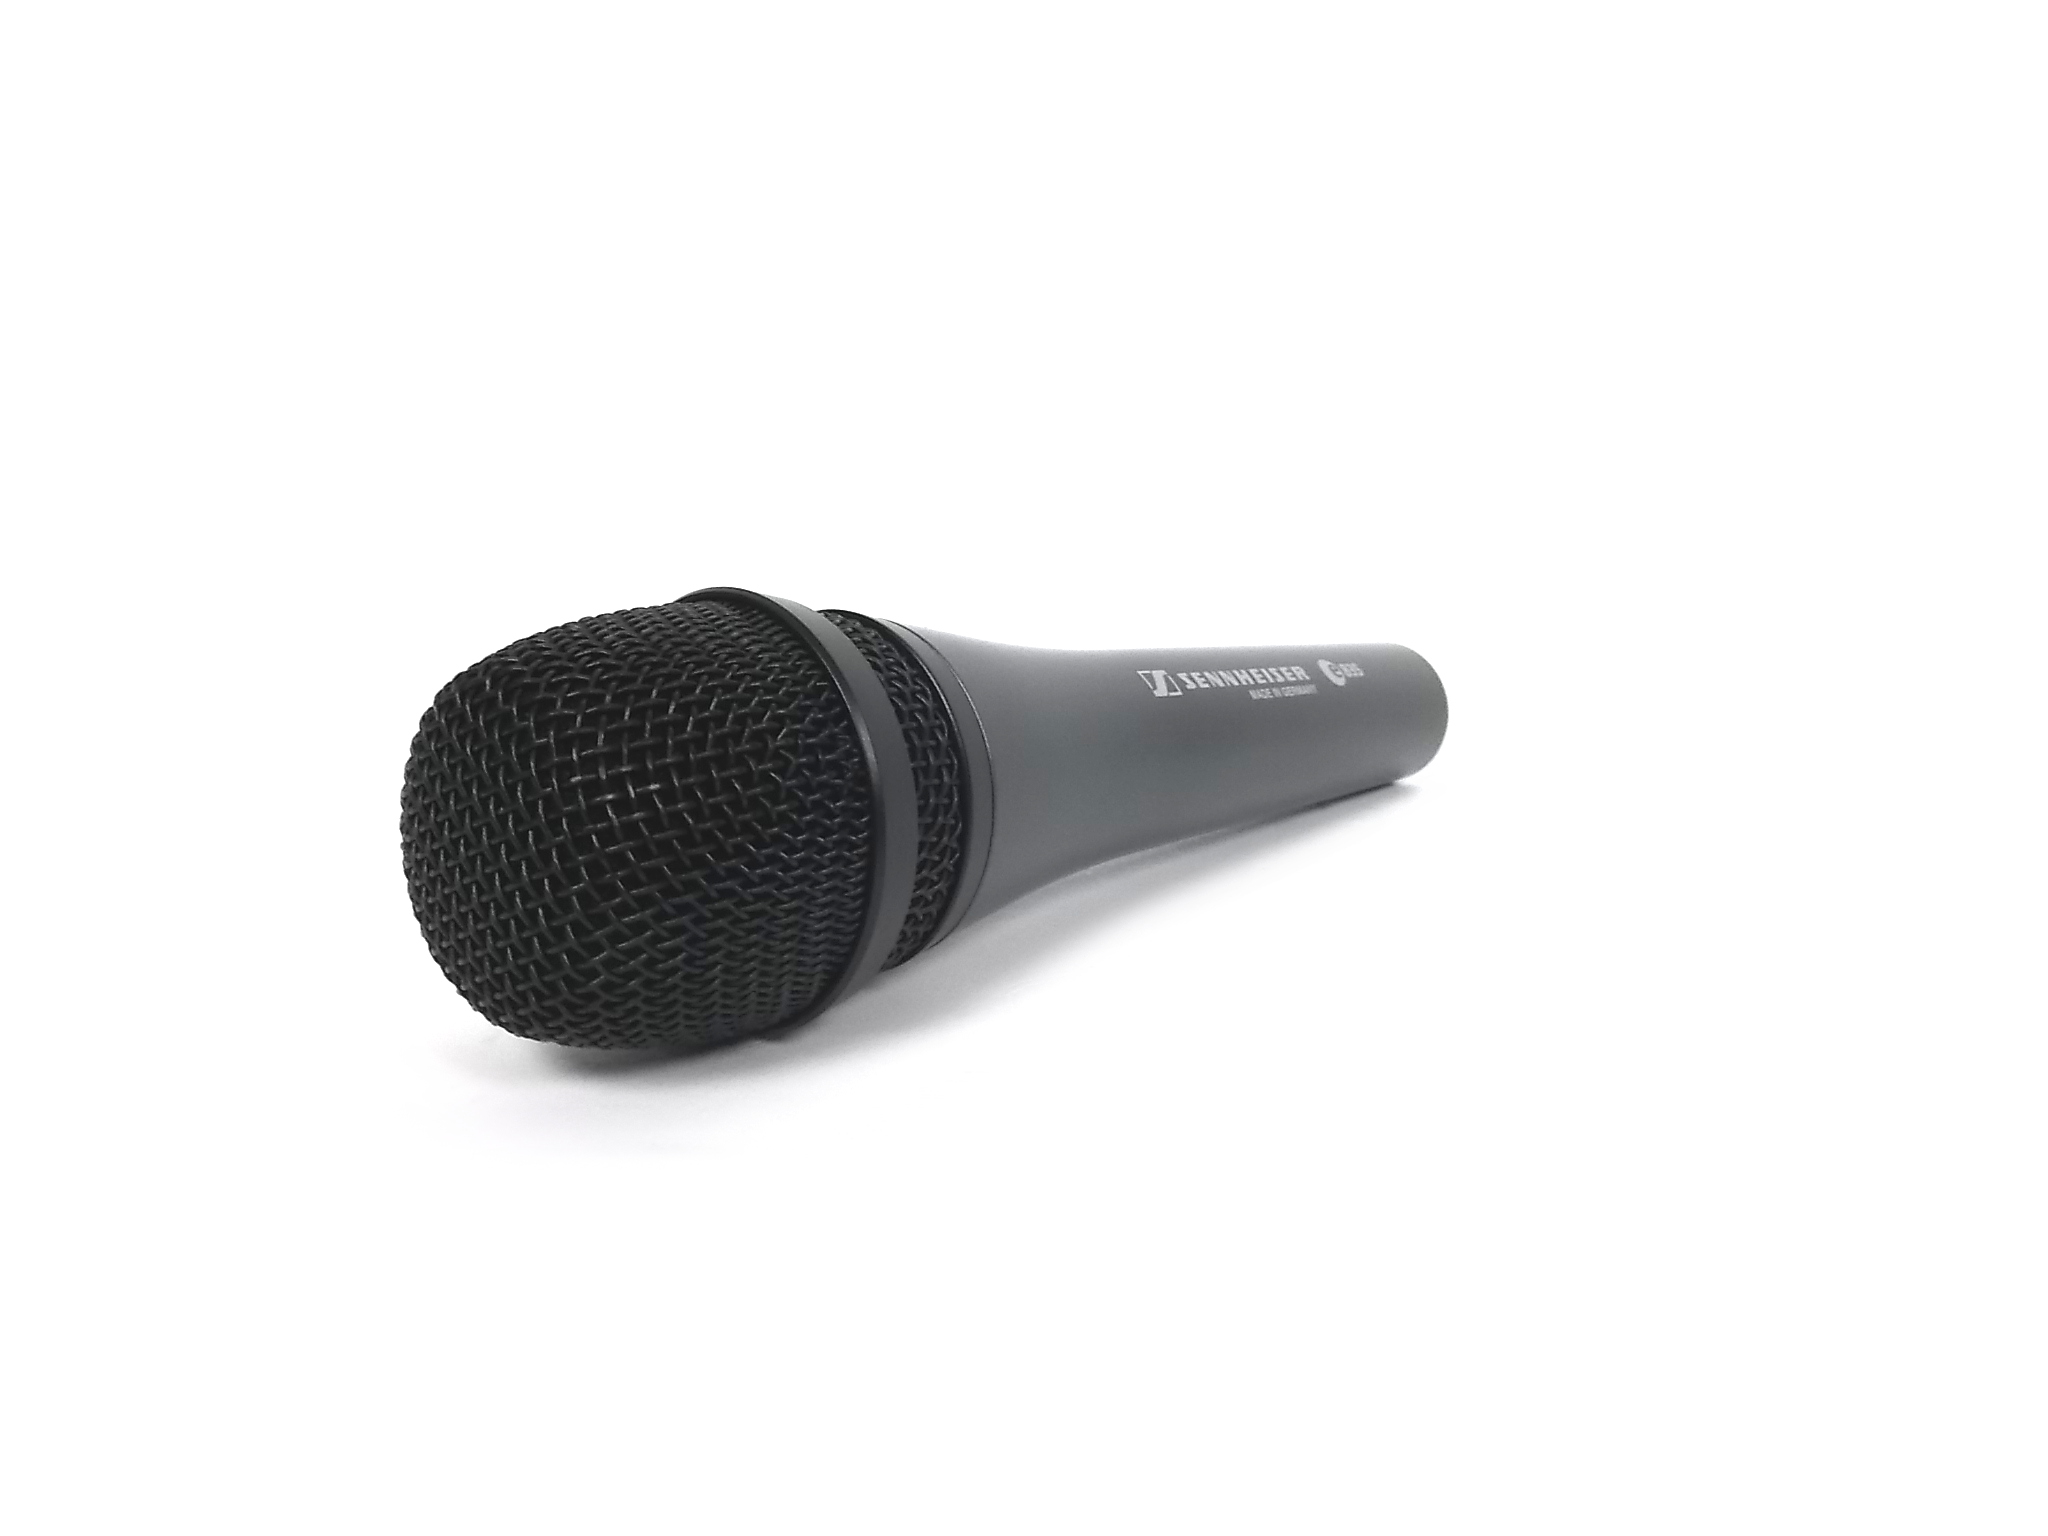 sennheiser e835 dynamic cardioid microphone. Black Bedroom Furniture Sets. Home Design Ideas